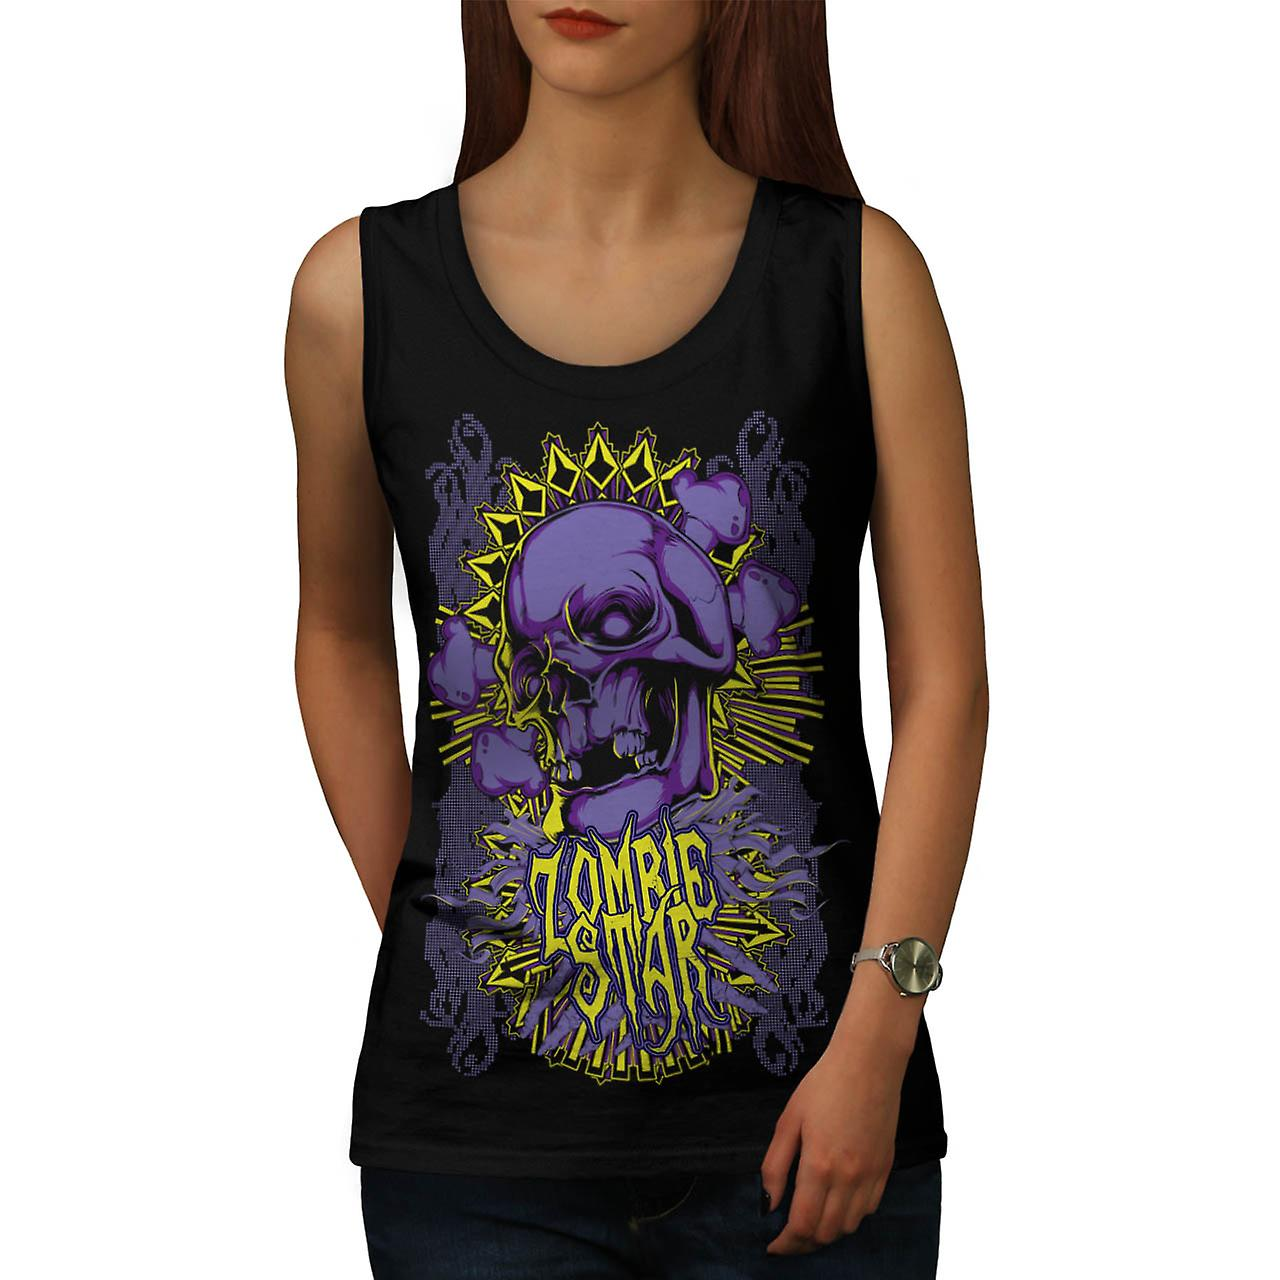 Monster-Zombie-Star-Devils-Zone Frauen Tank-Top schwarz | Wellcoda